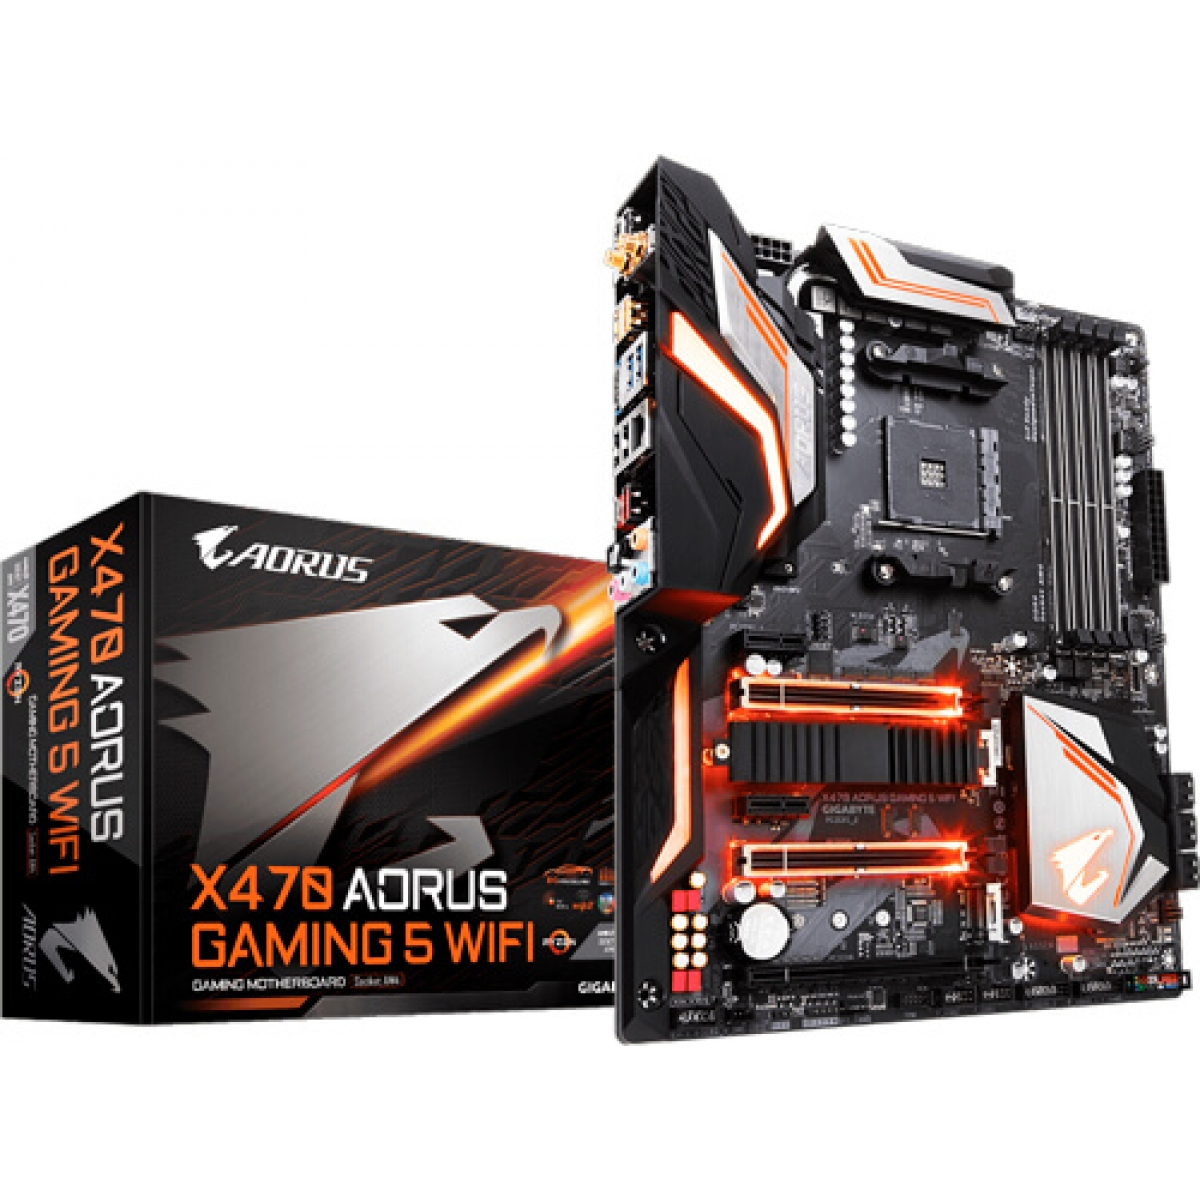 Placa Mãe Gigabyte X470 AORUS Gaming 5 WIFI, Chipset X470, AMD AM4, ATX, DDR4